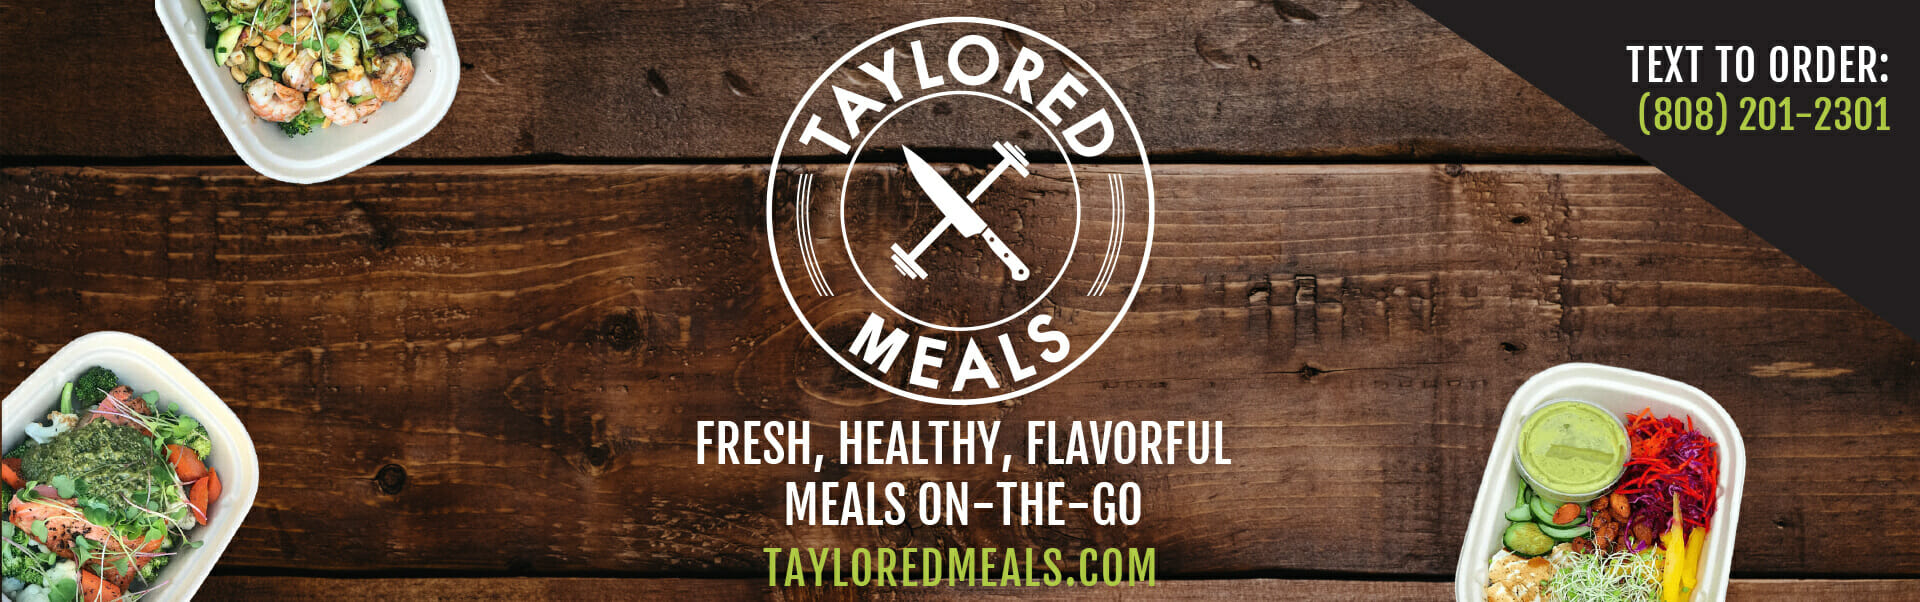 Taylored Meals — Event Banner